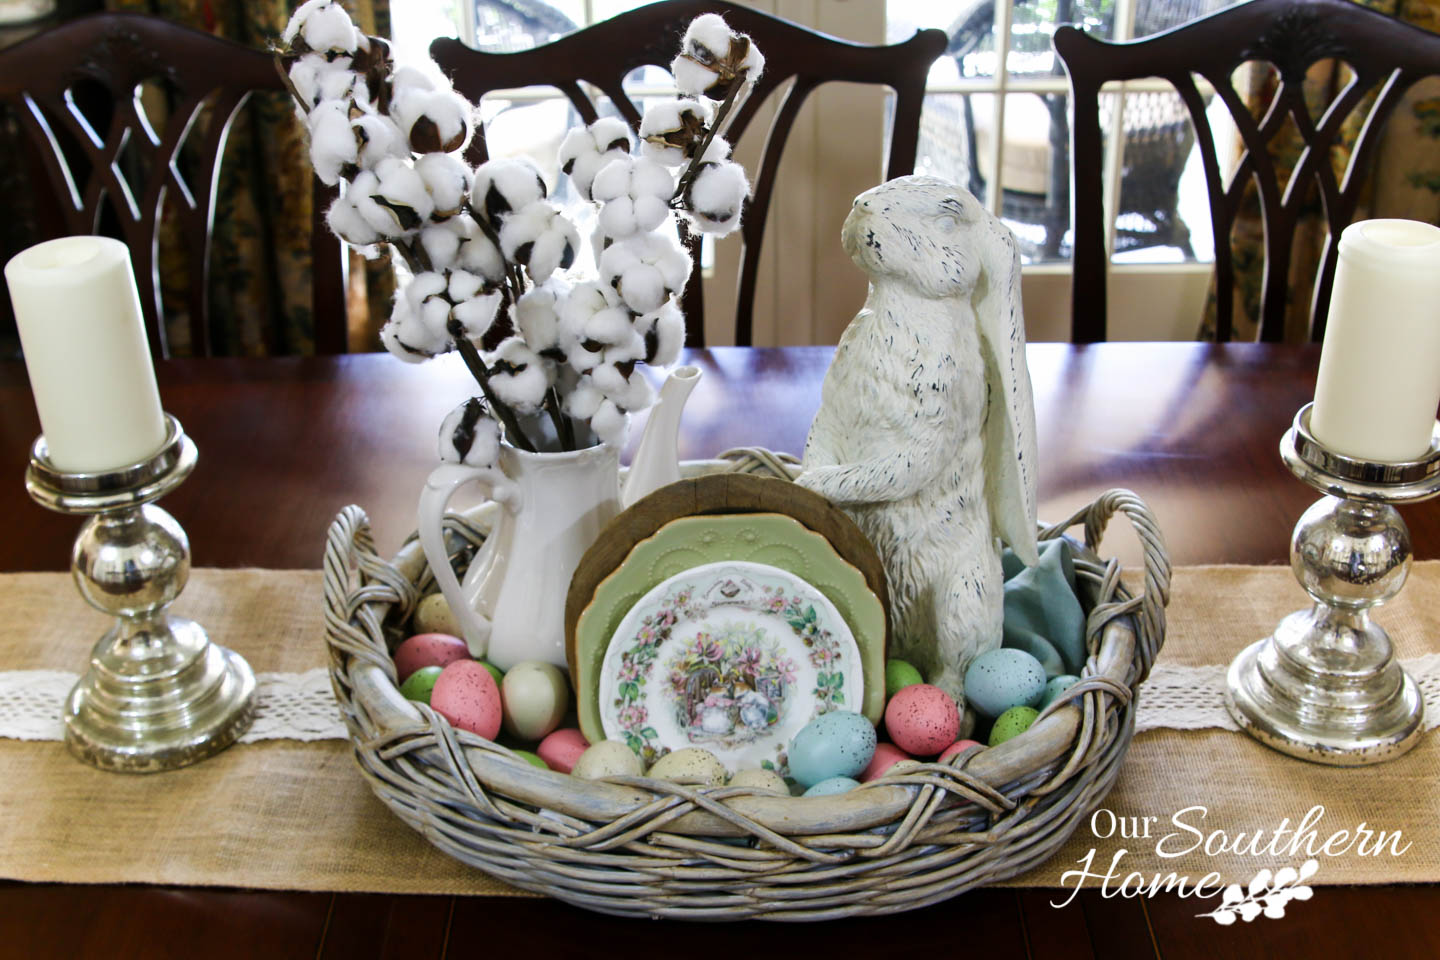 10-Minute Spring Centerpiece by Our Southern Home